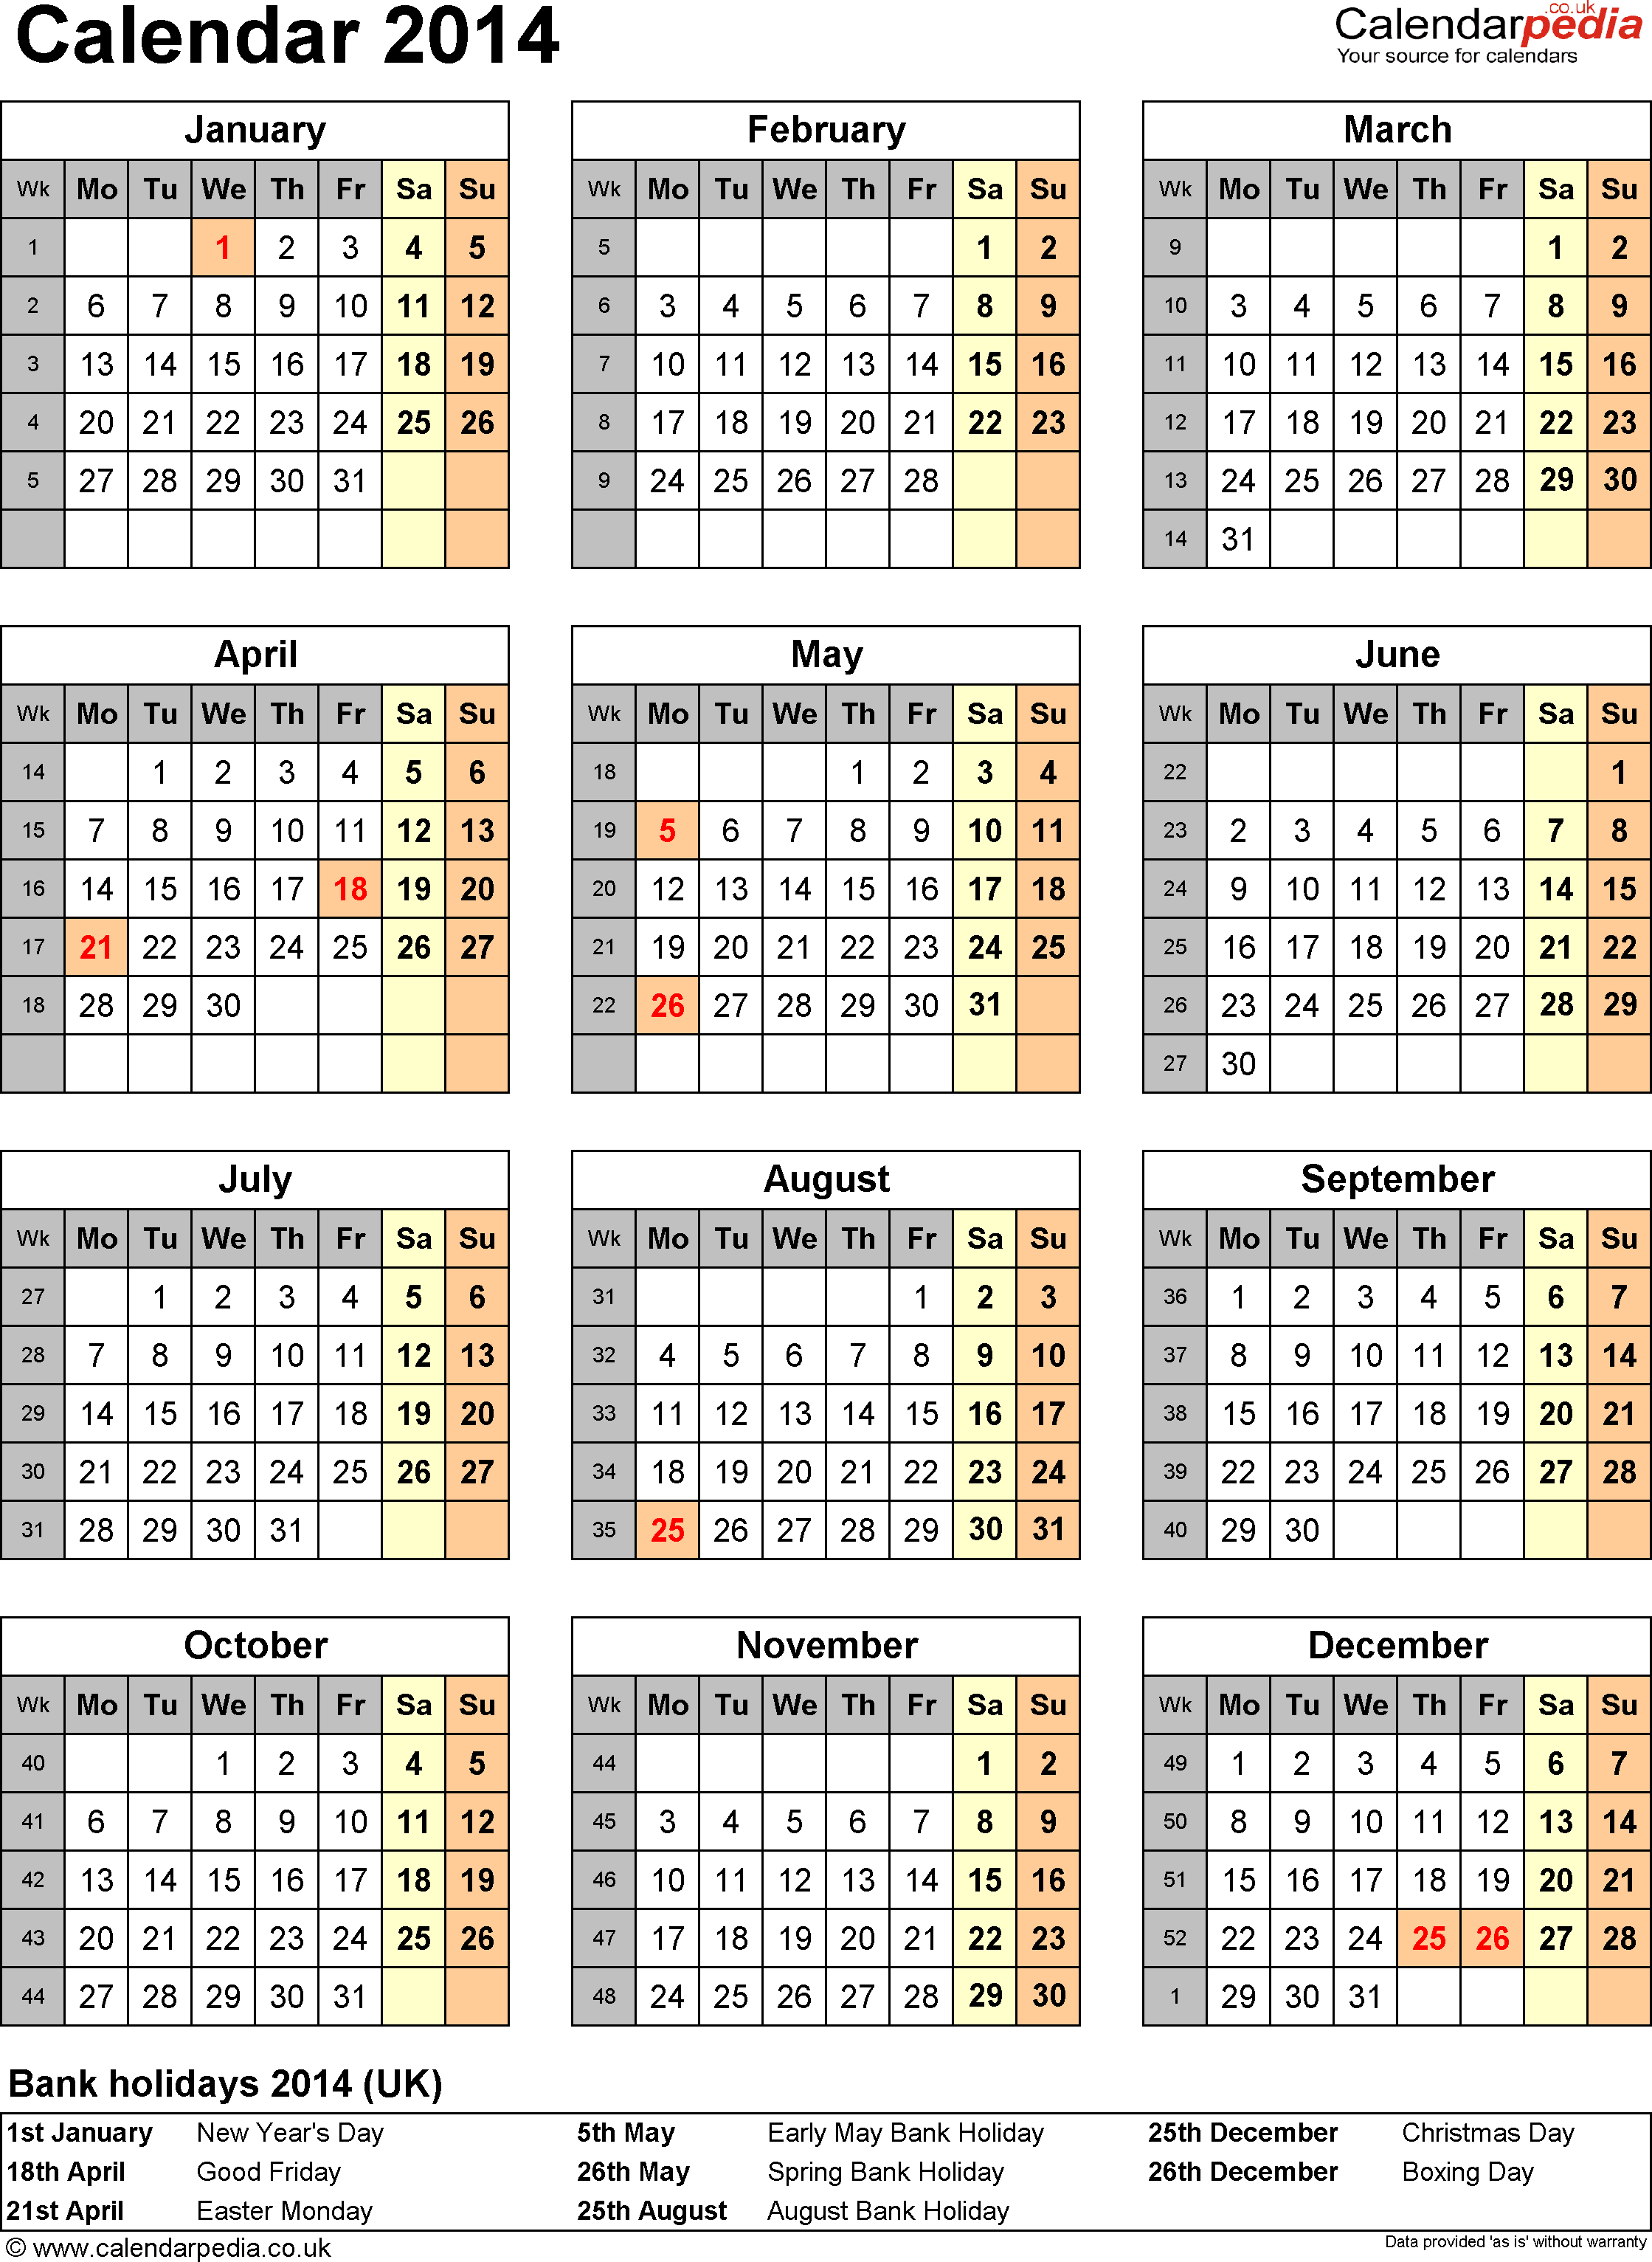 calendarpedia.co.uk